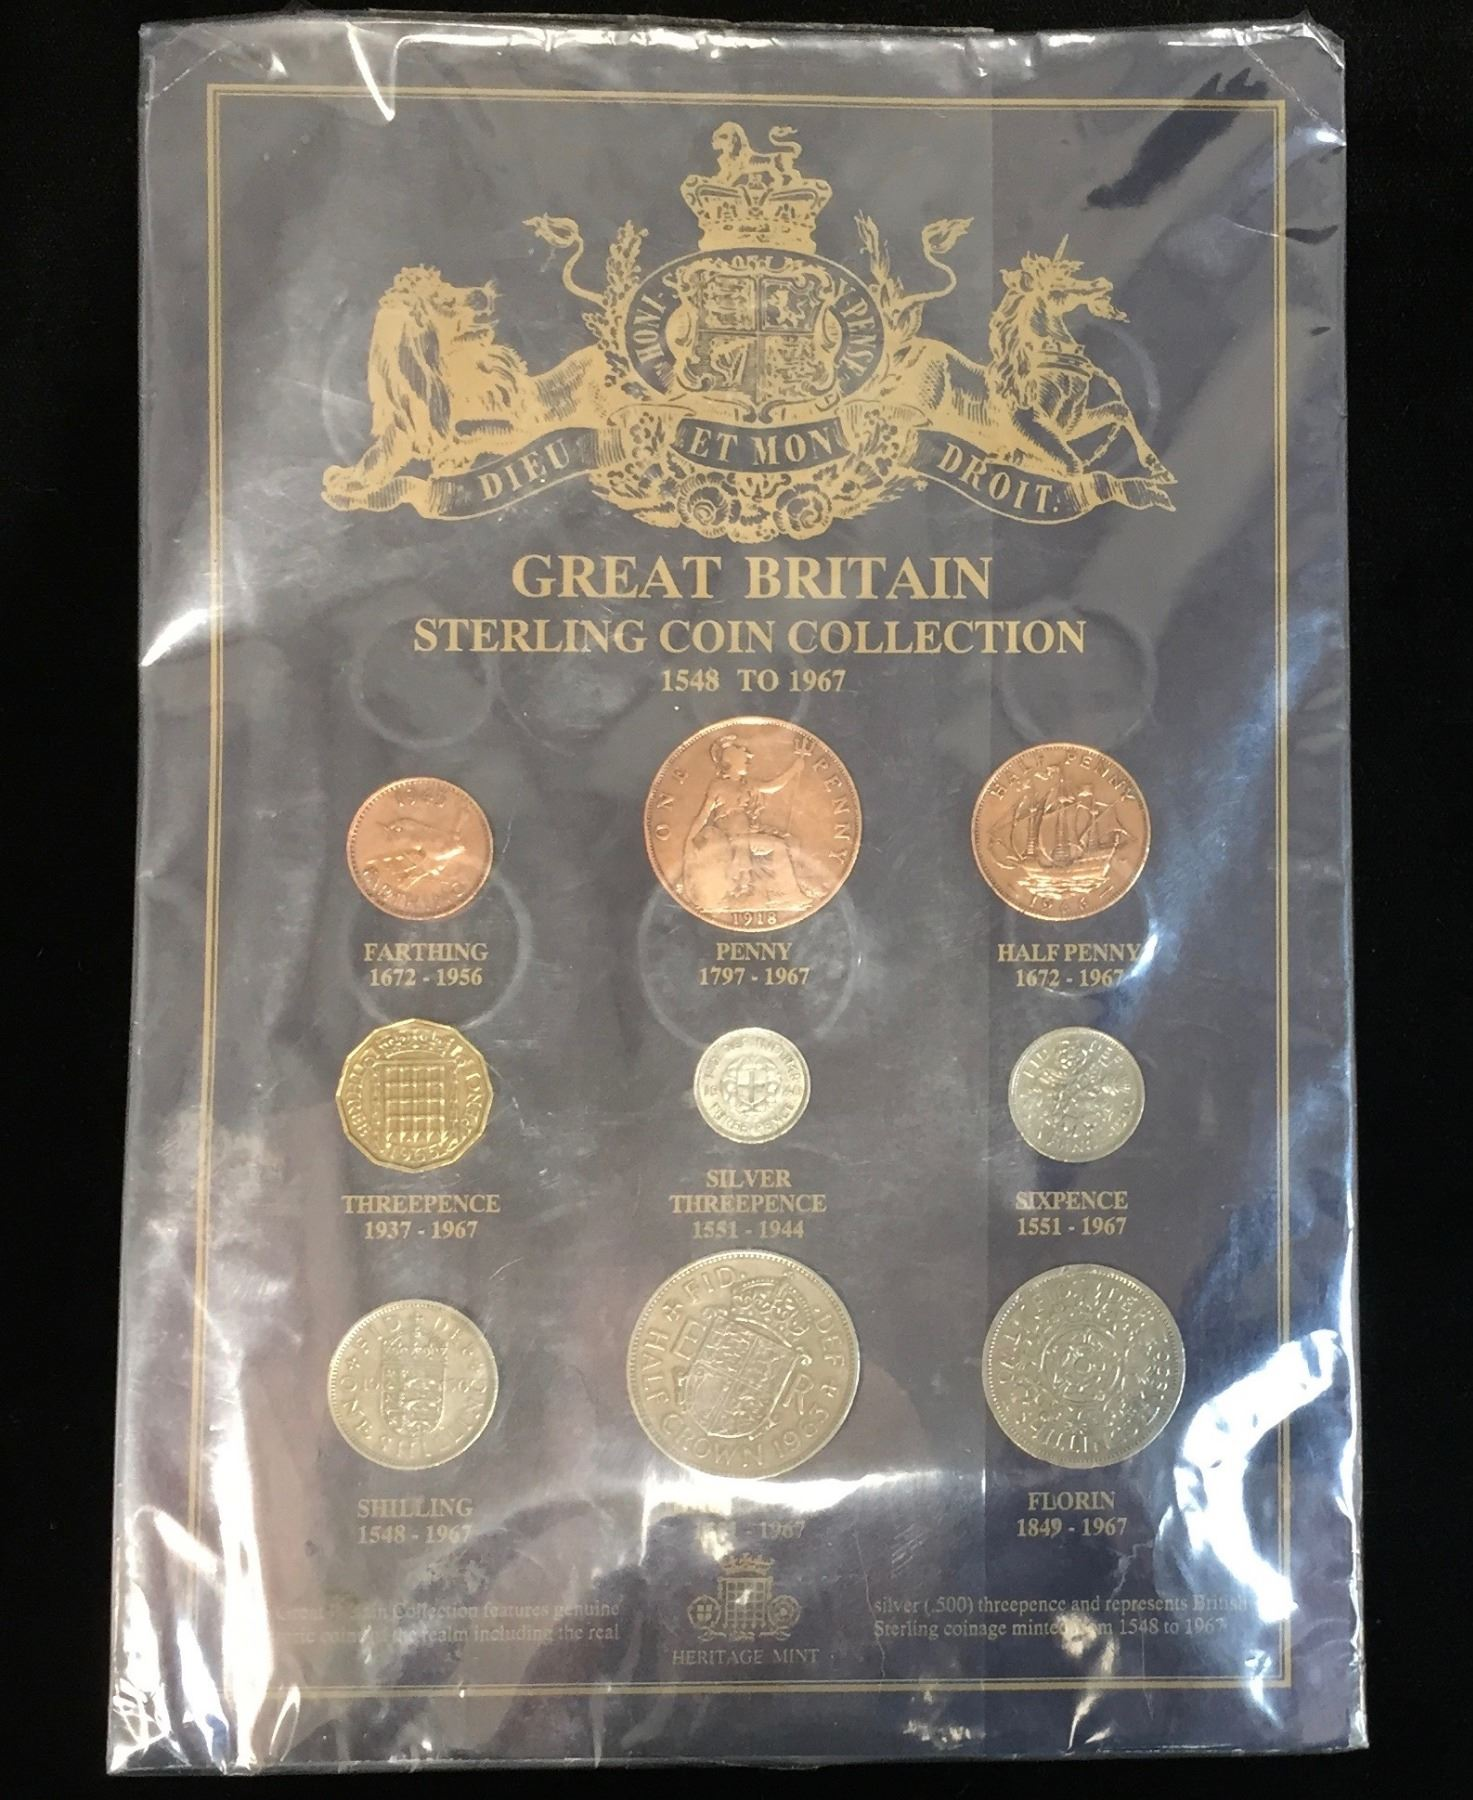 1548-1967 UK Great Britain Sterling Coin Collection